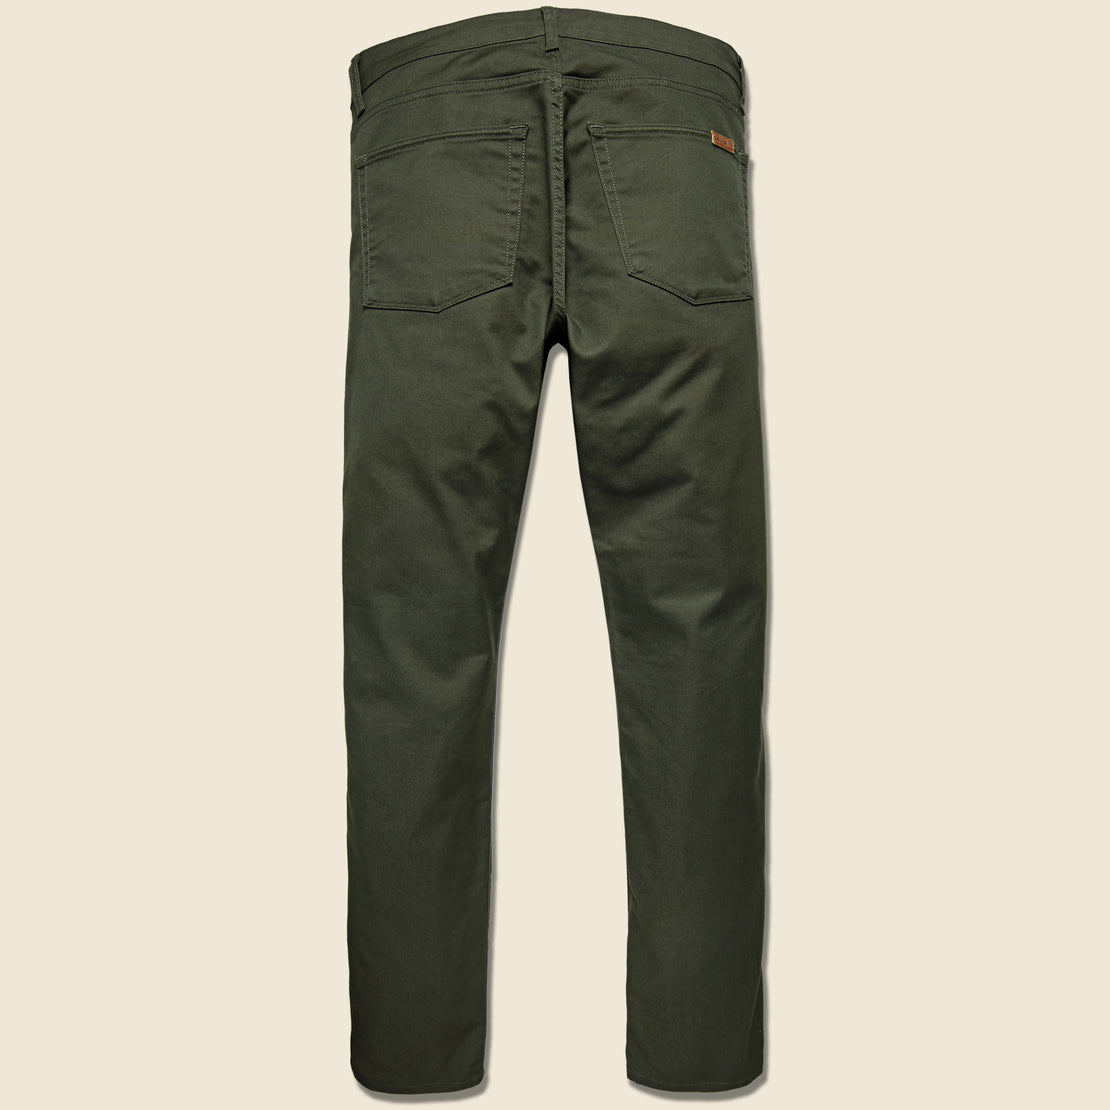 Vicious Pant - Cypress - Carhartt WIP - STAG Provisions - Pants - Twill